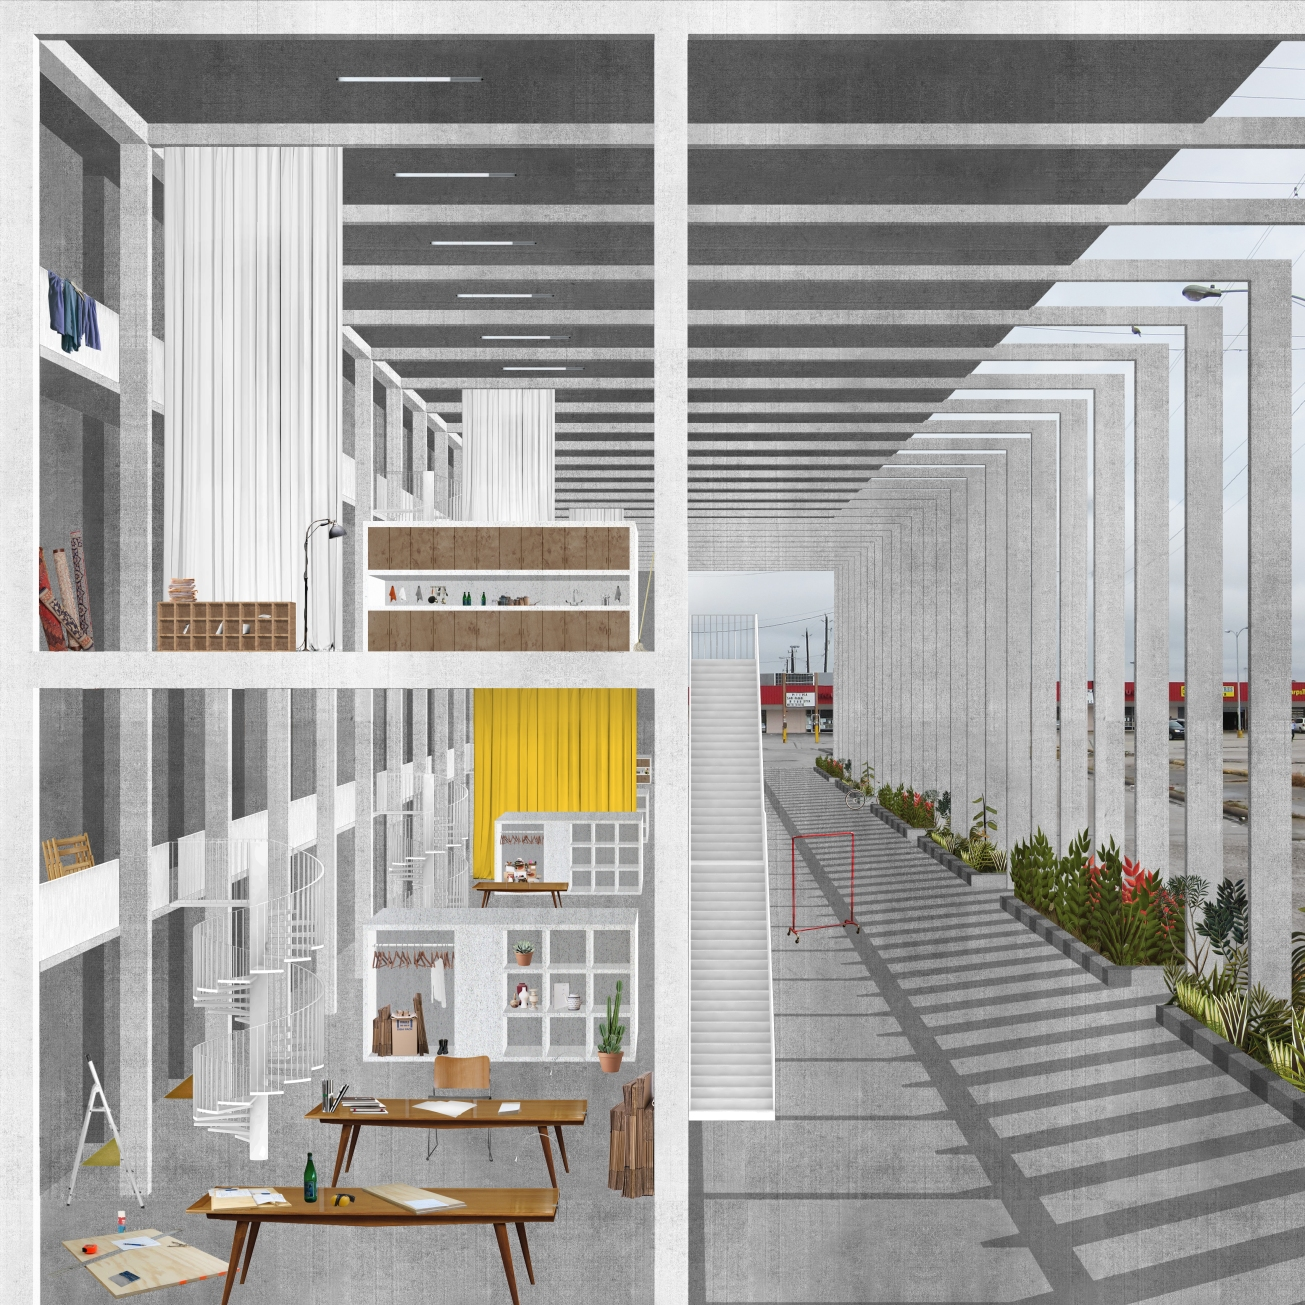 KAROLINA CZECZEK_YSOA_CONTEMPORARY STOA_SHARED SPACE 3